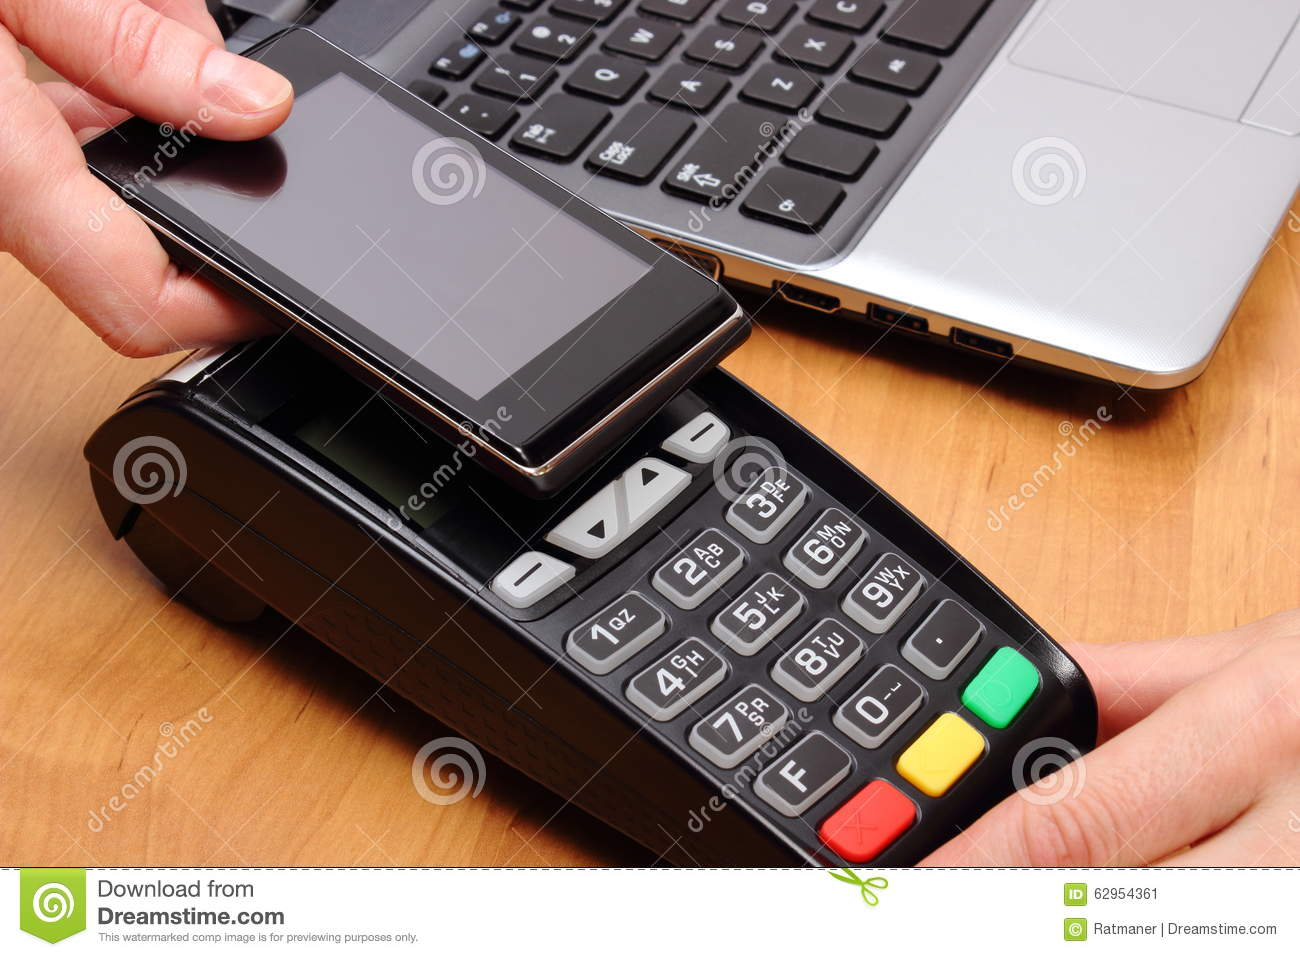 Paying With Mobile Phone With NFC Technology, Finance Concept Stock Image - Image of equipment